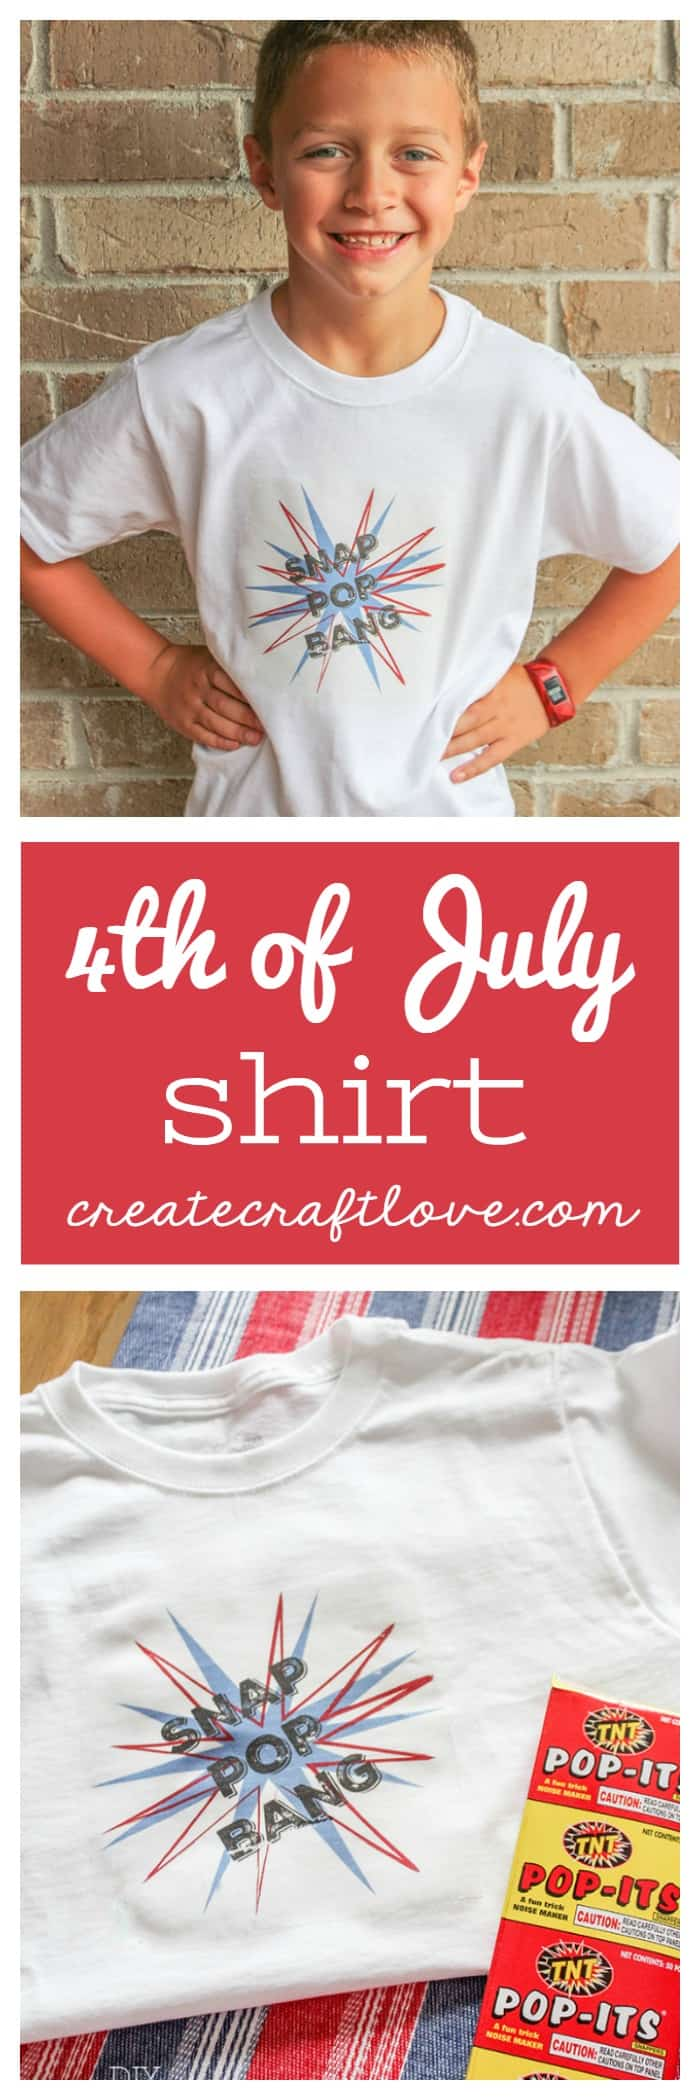 Learn how to upload your own images into Cricut Design Space to create an adorable 4th of July Shirt!